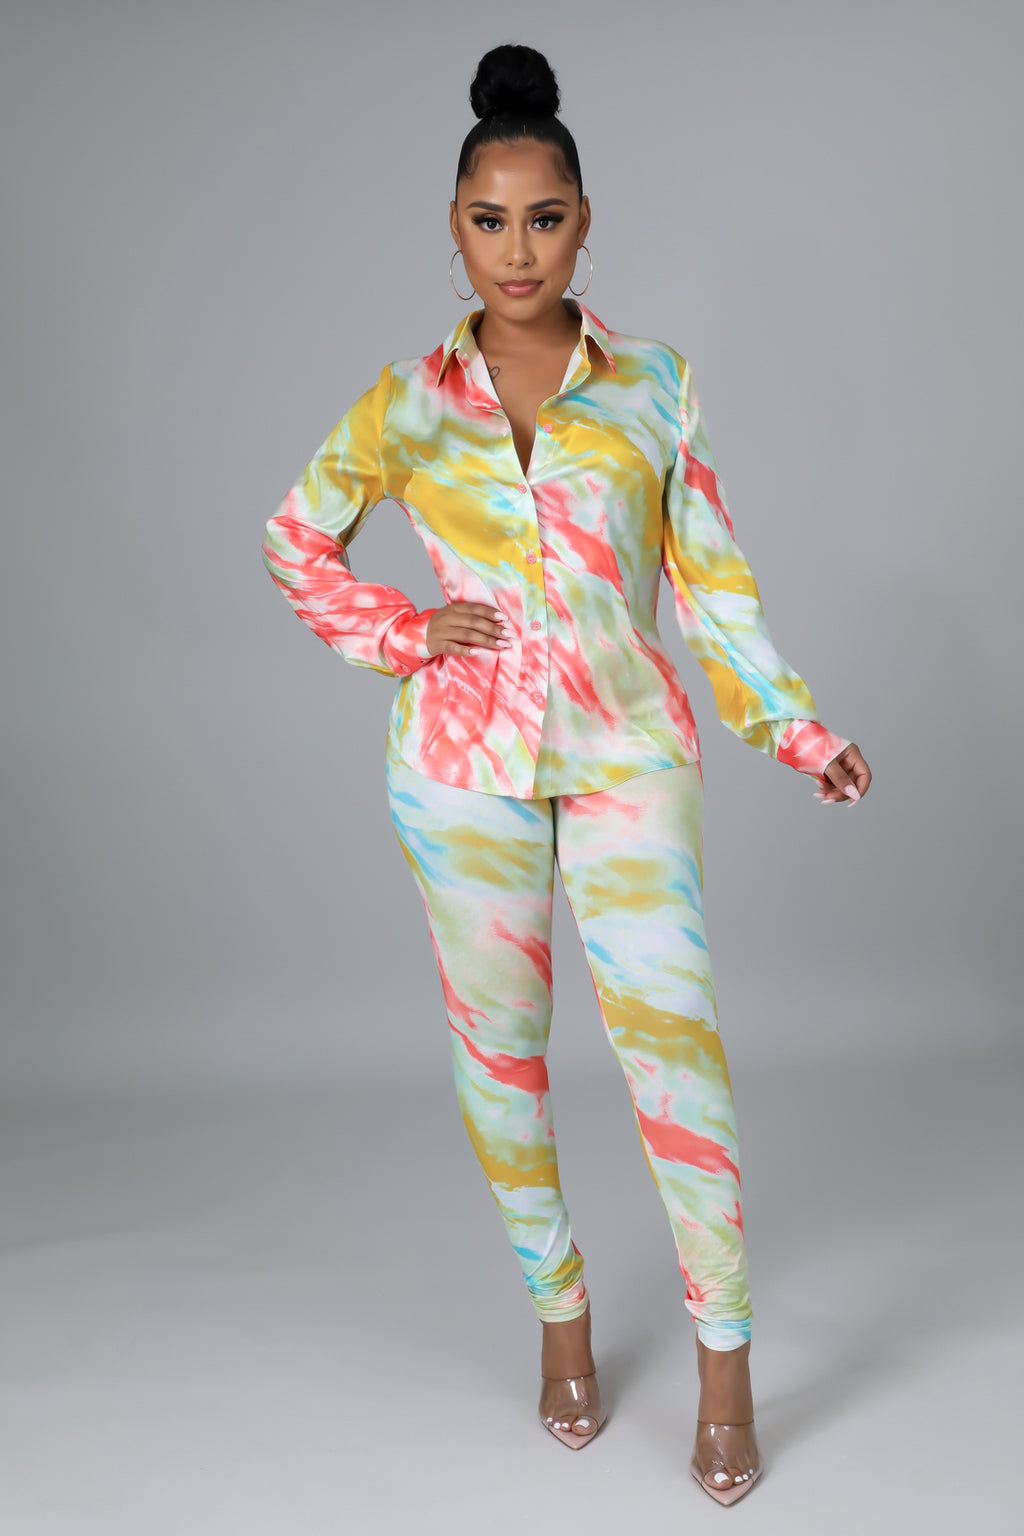 Grammy Glam Maxi Dress | GitiOnline